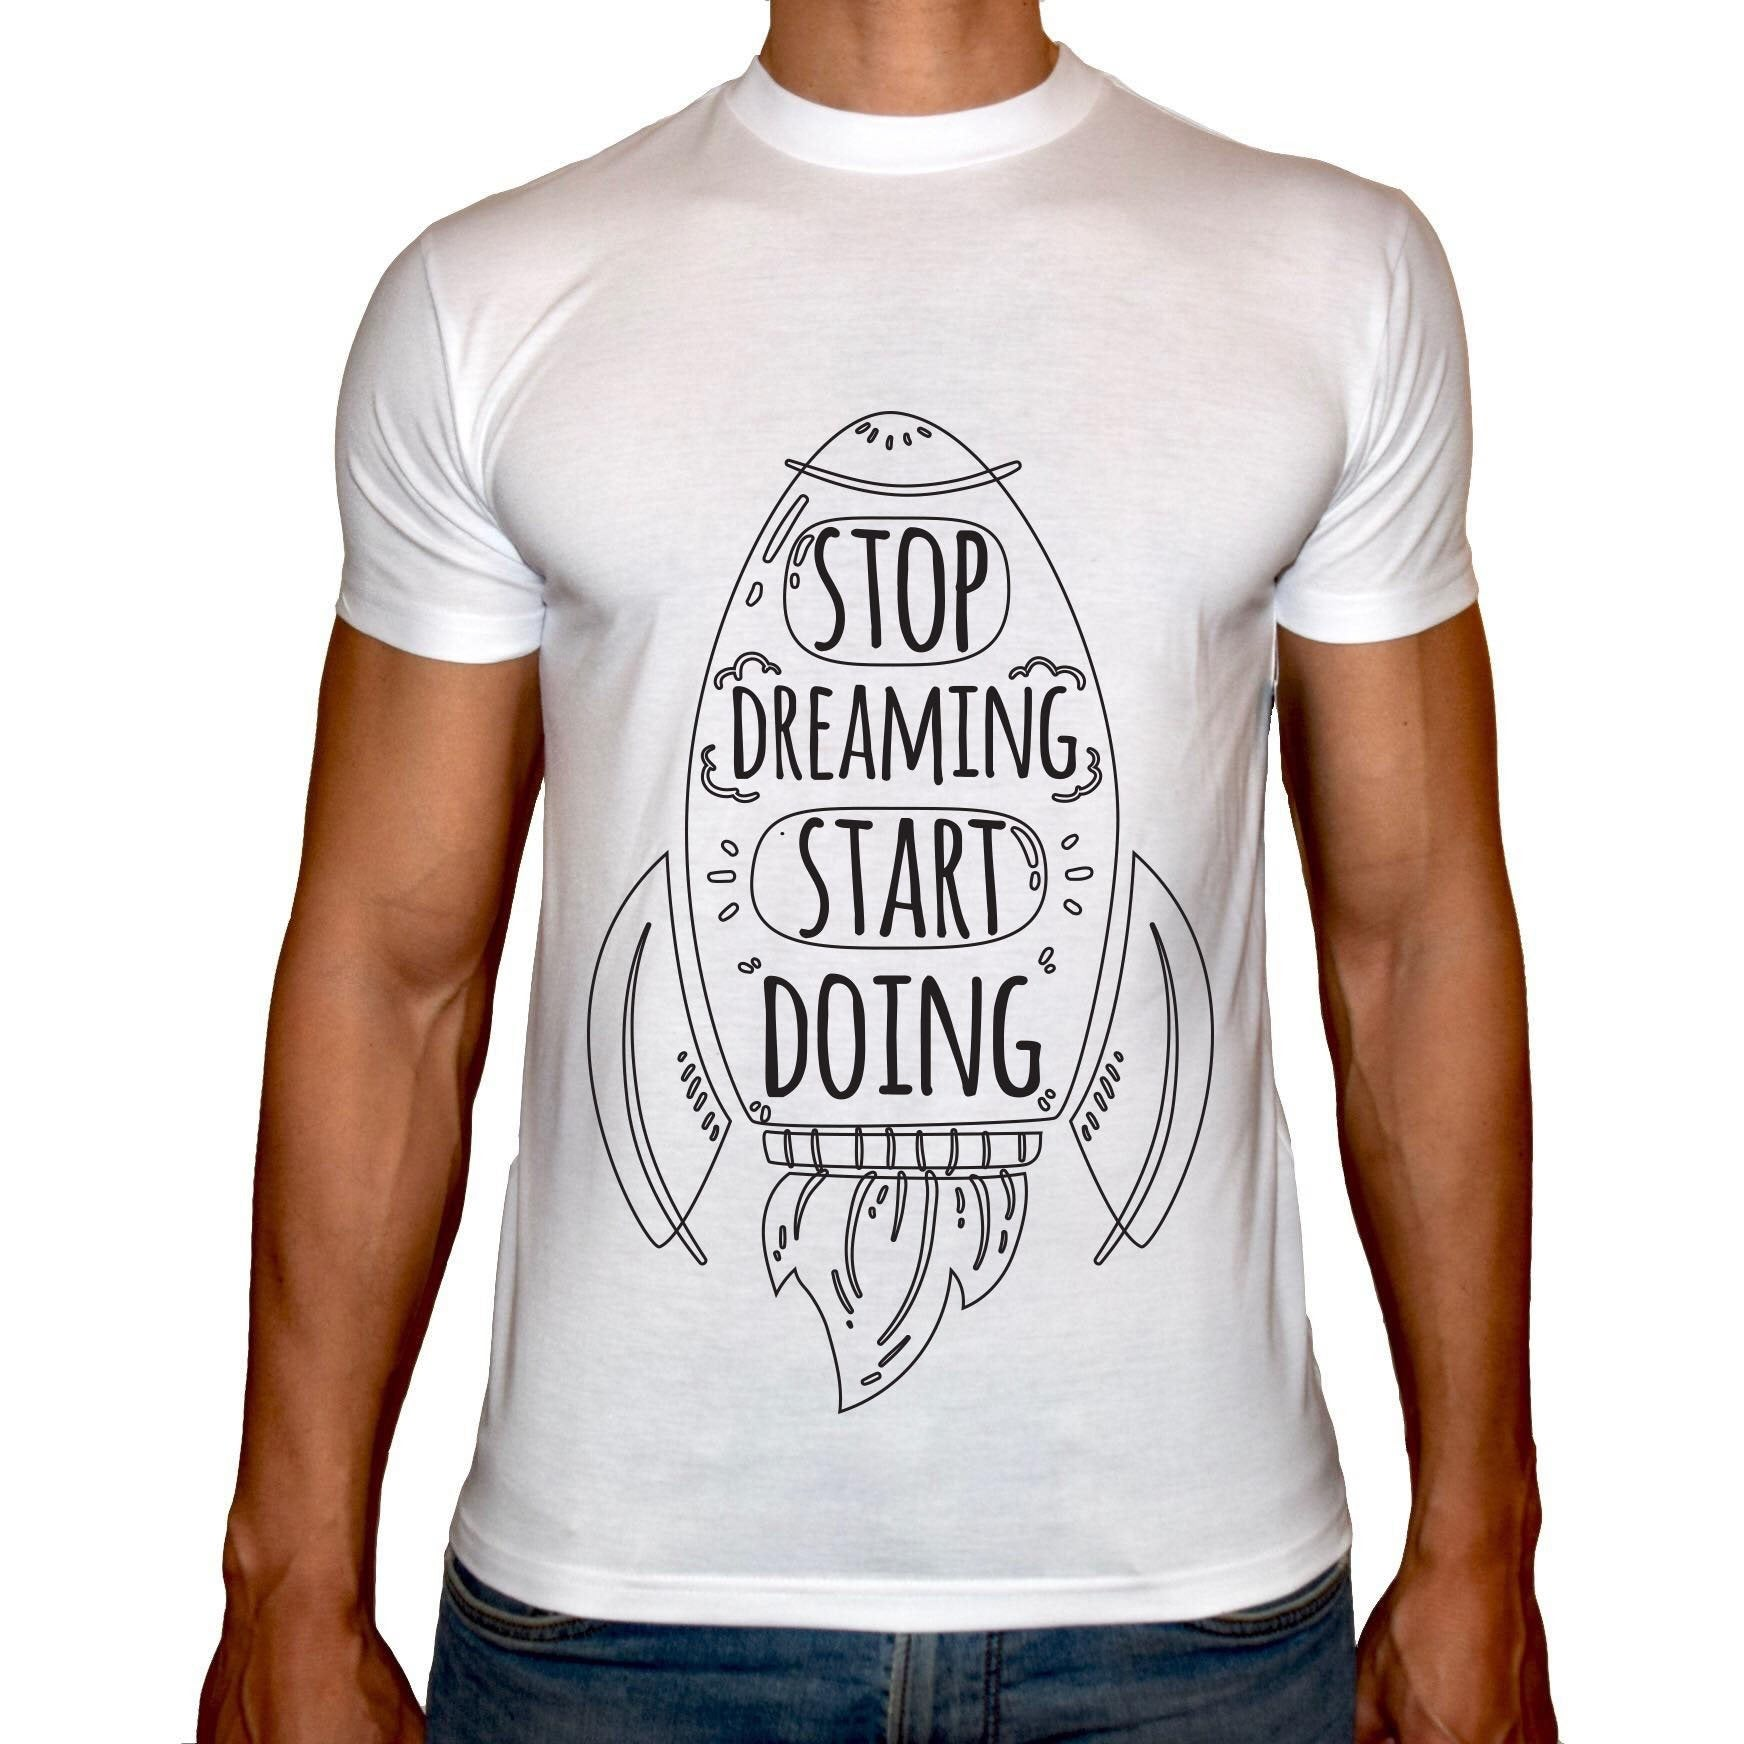 Phoenix WHITE Round Neck Printed T-Shirt Men(Stop Dreaming)